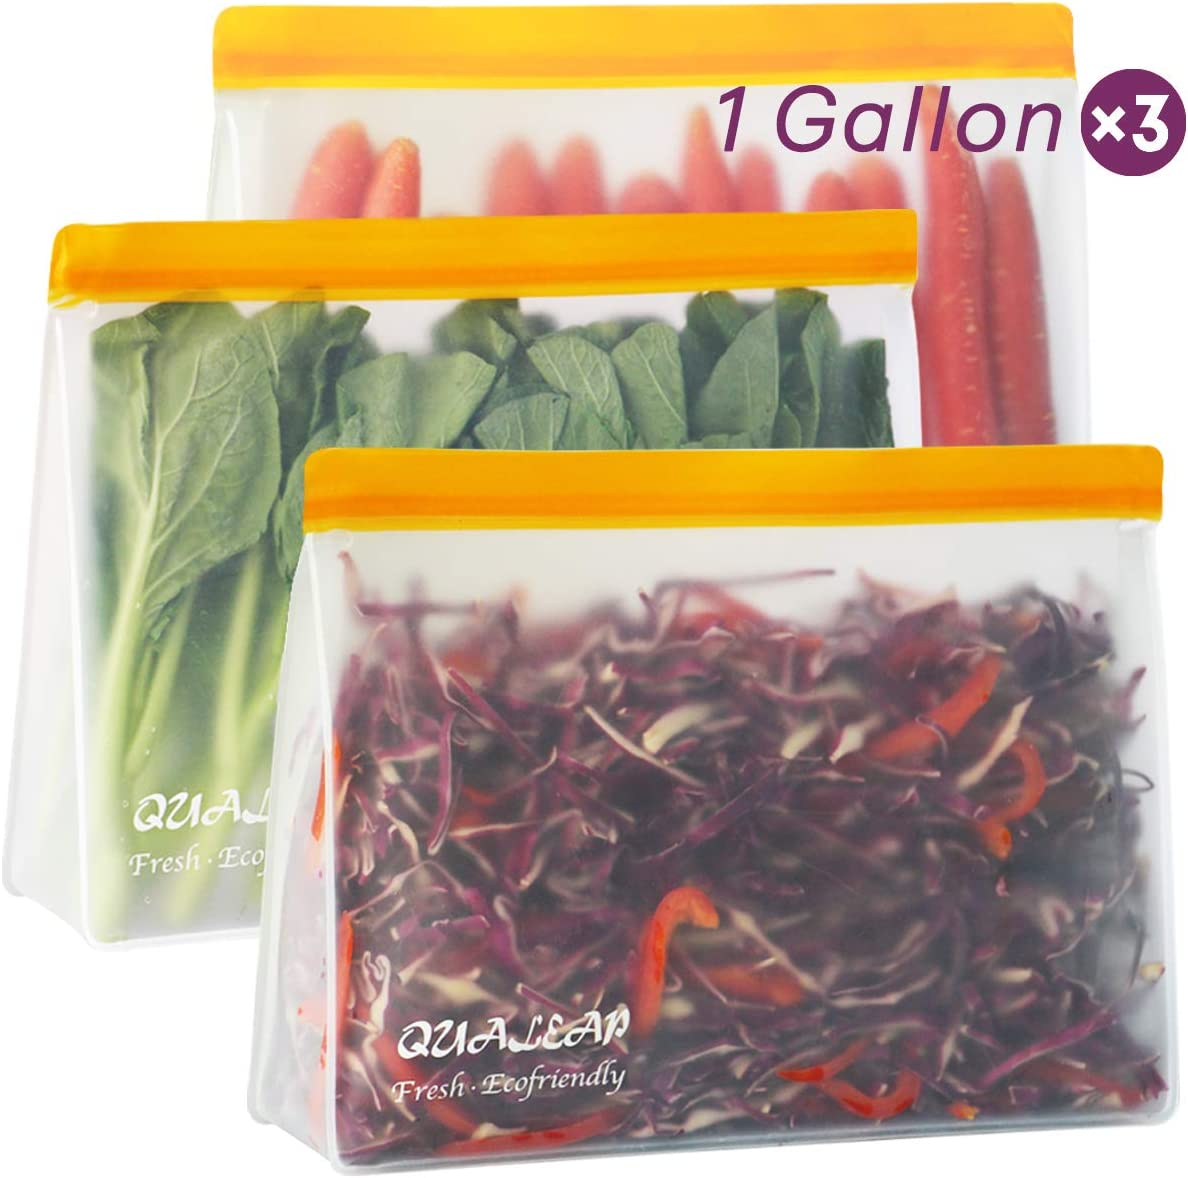 Stand-Up Reusable Storage Bags (1 Gallon, Set of 3) - Leakproof Ziplock Gallon Freezer Bags for Sandwich, Snack, Meat, Vegetables, Fruit etc.